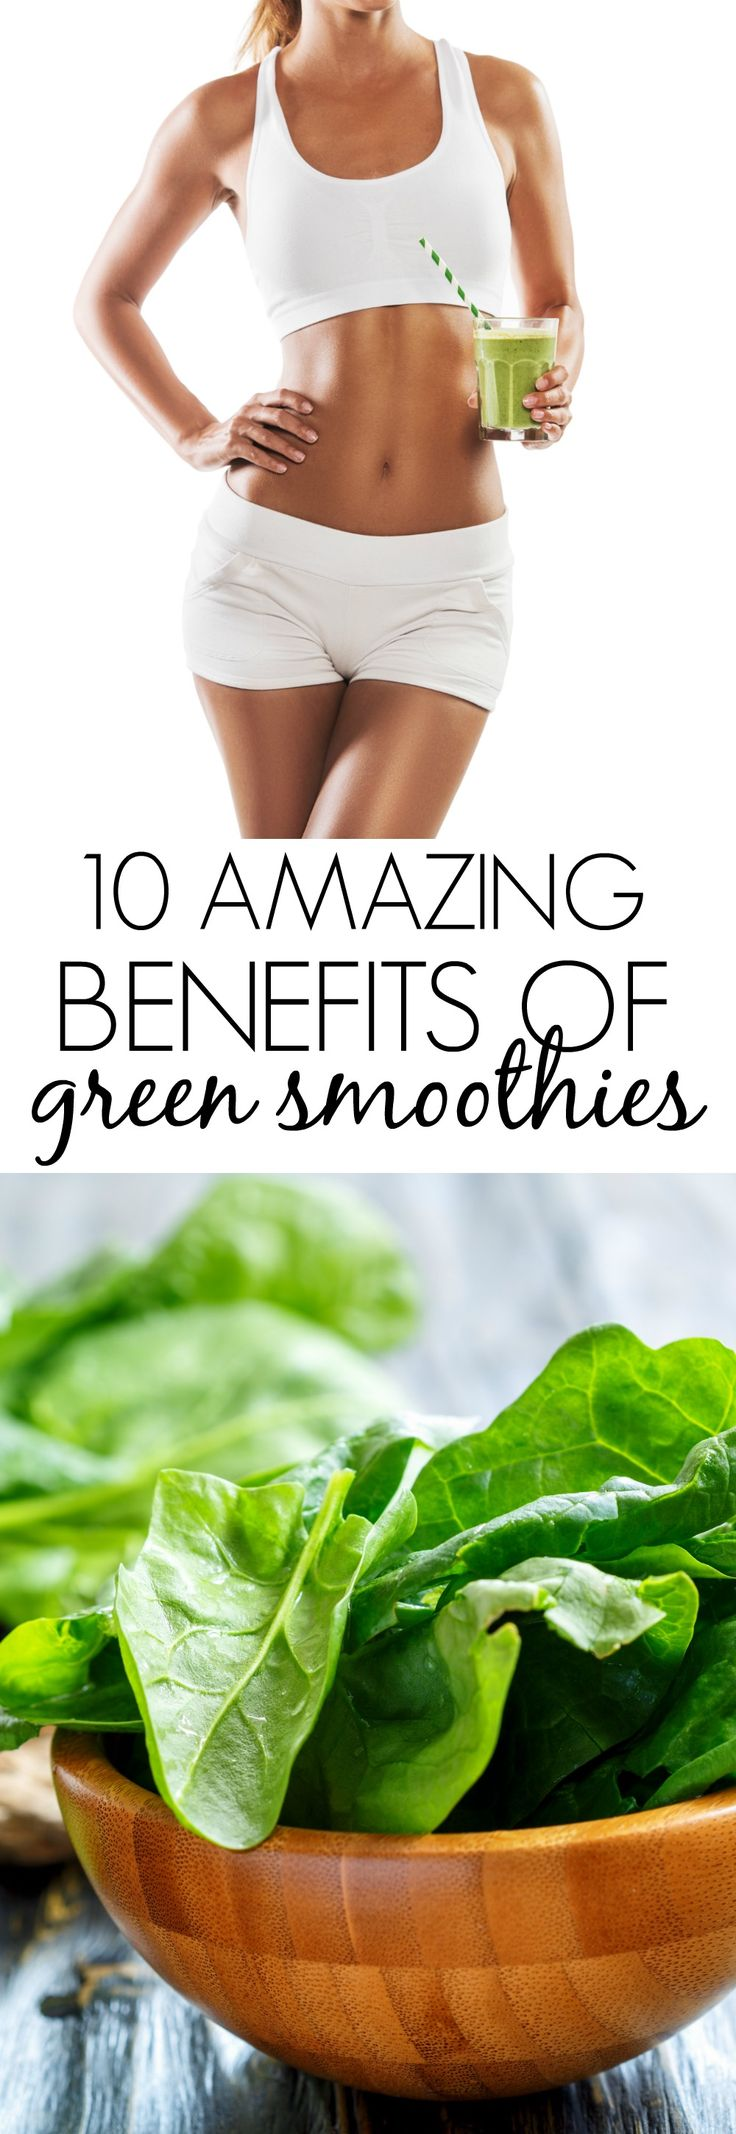 I LOVE how green smoothies are so easy to make and provide AMAZING health benefits! They're life changing!